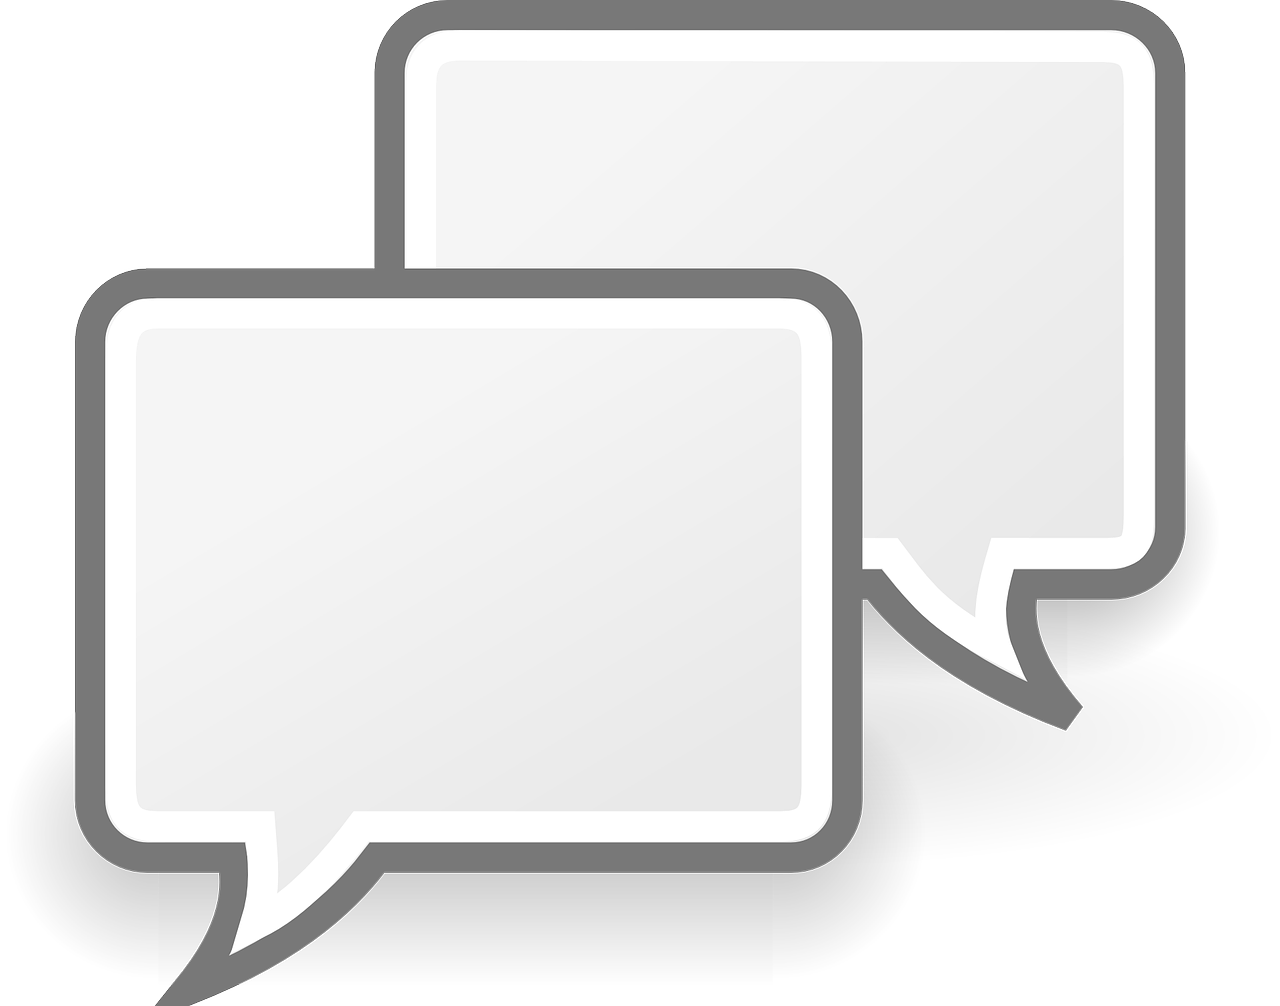 speech bubbles indicating text conversation